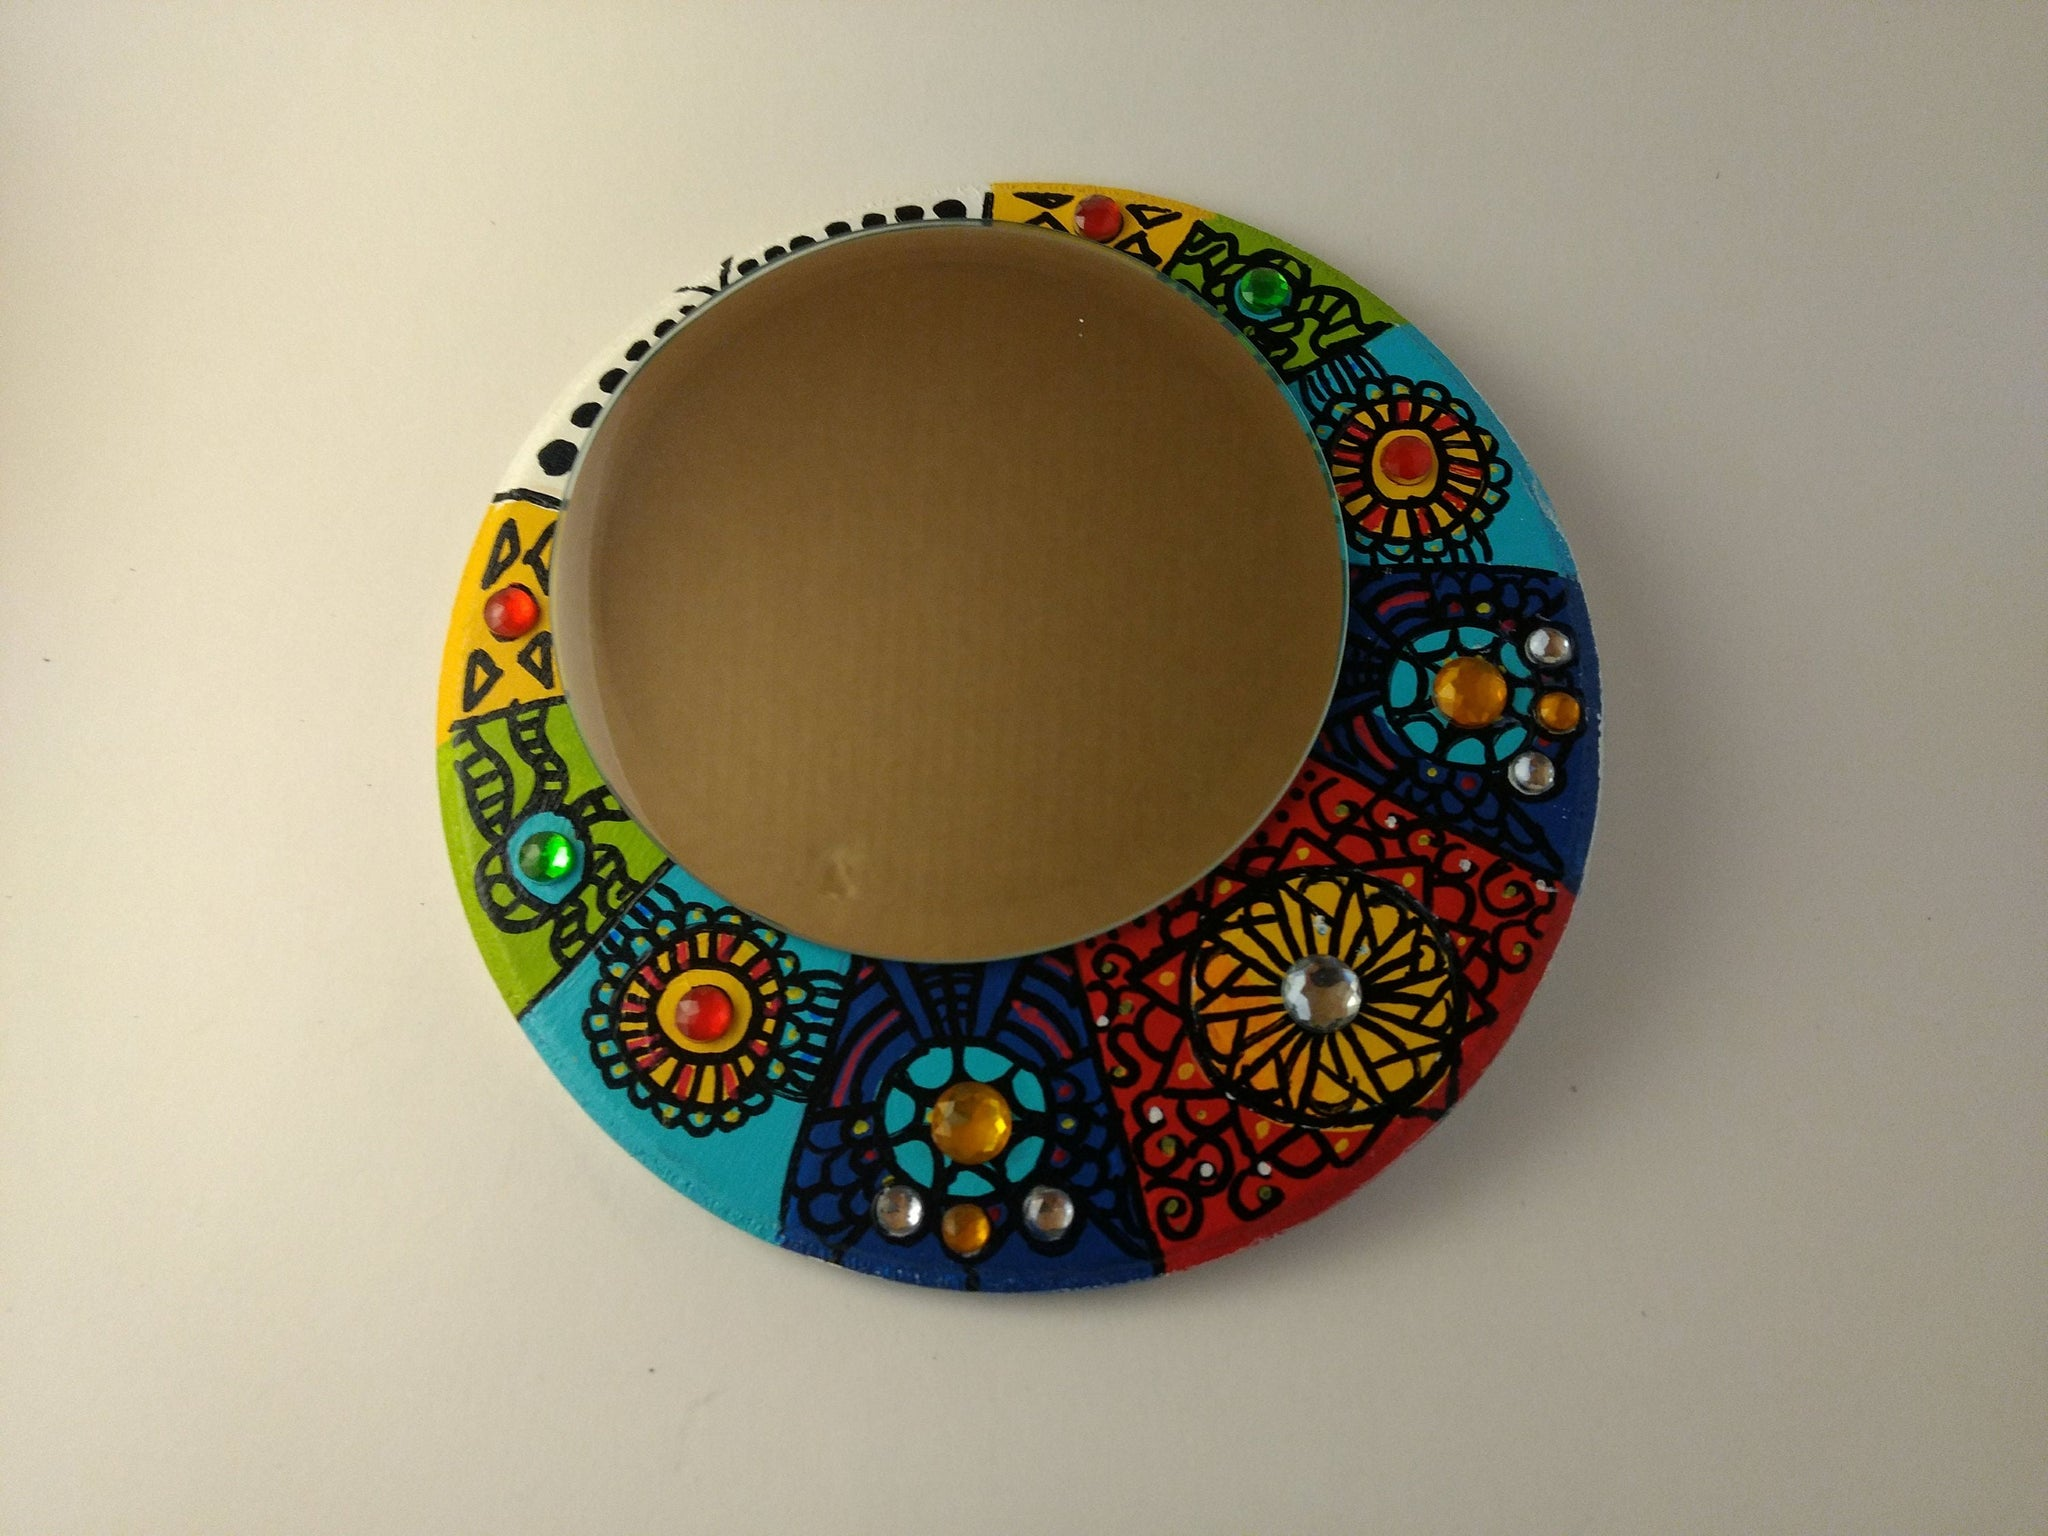 "Hand painted wooden mirror 7""x7"" inches, acrylic painting with circle mirror, handmade, boho mirror wall hanging"